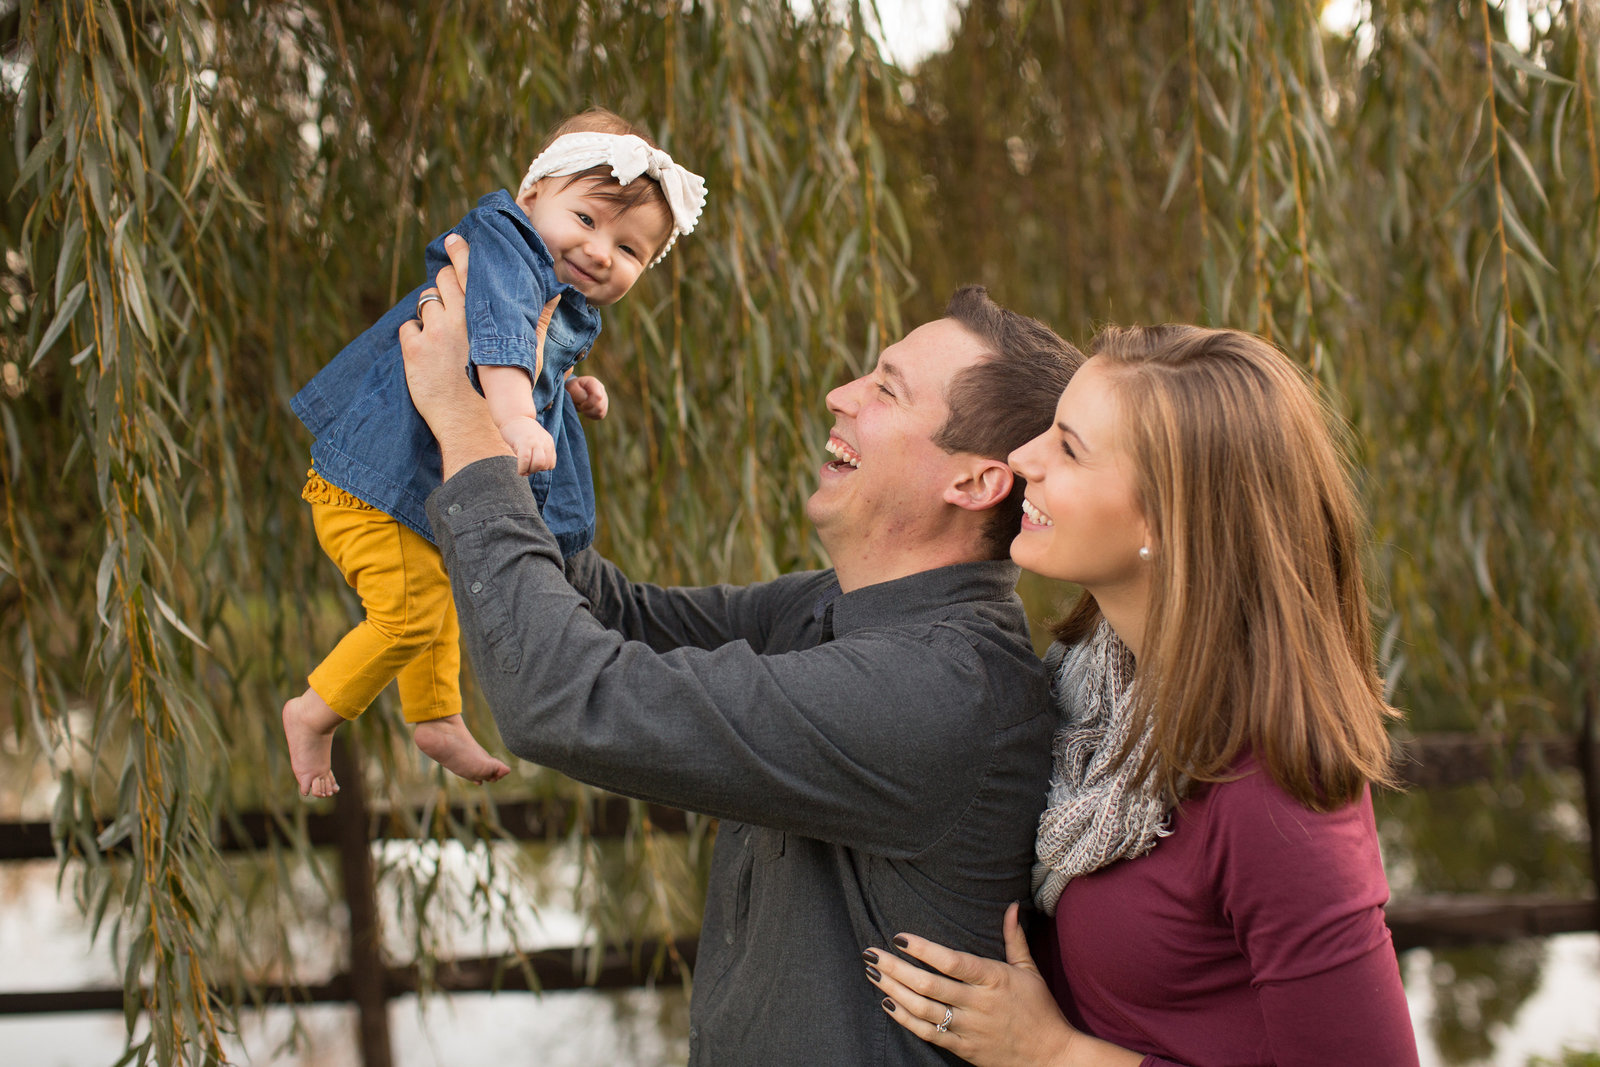 Father lifts smiling baby into air with mother looking